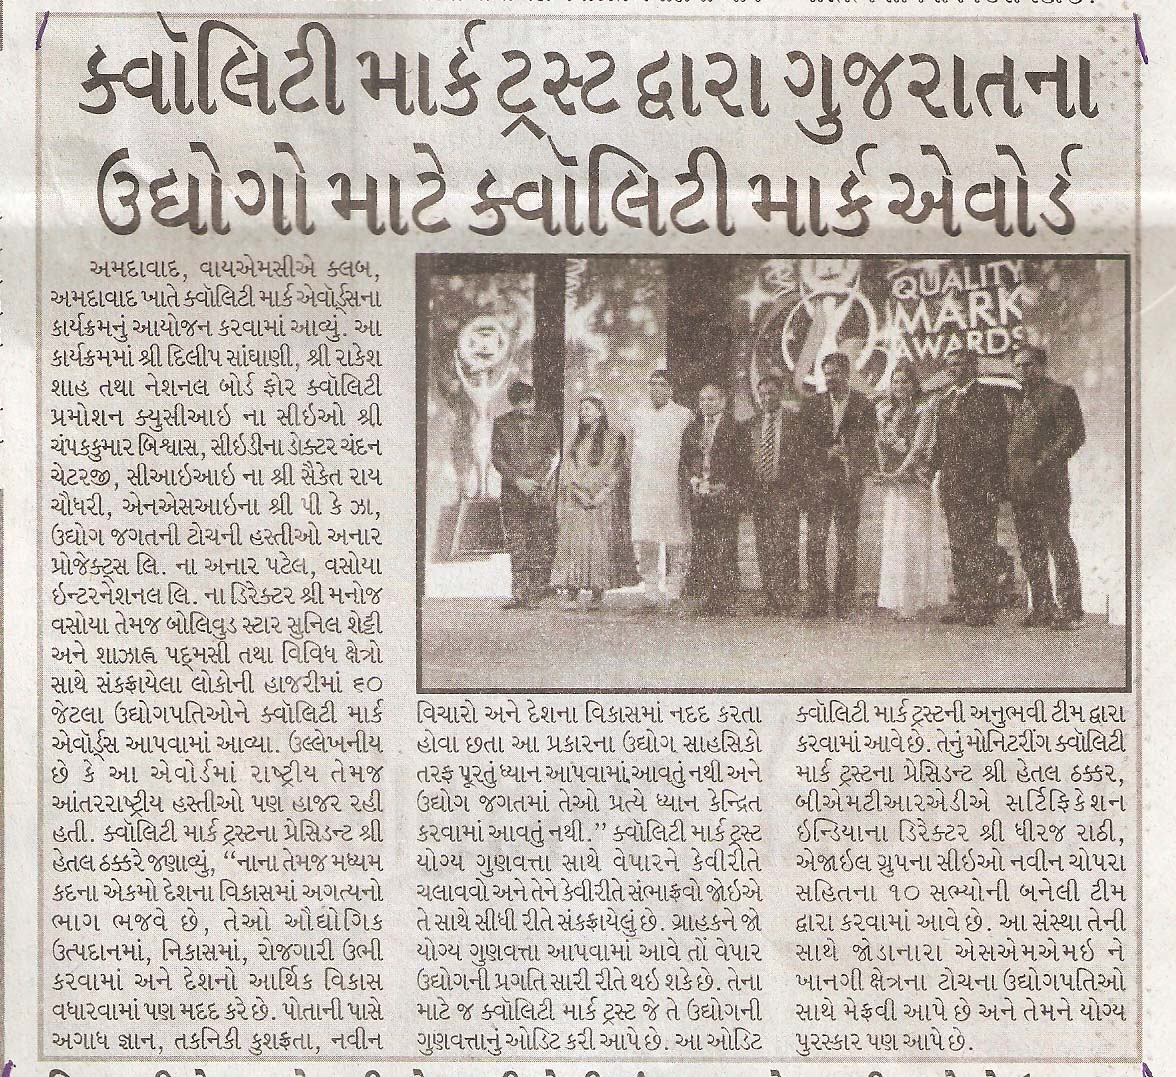 Garvi Gujarat_Ahm-12 May,2015